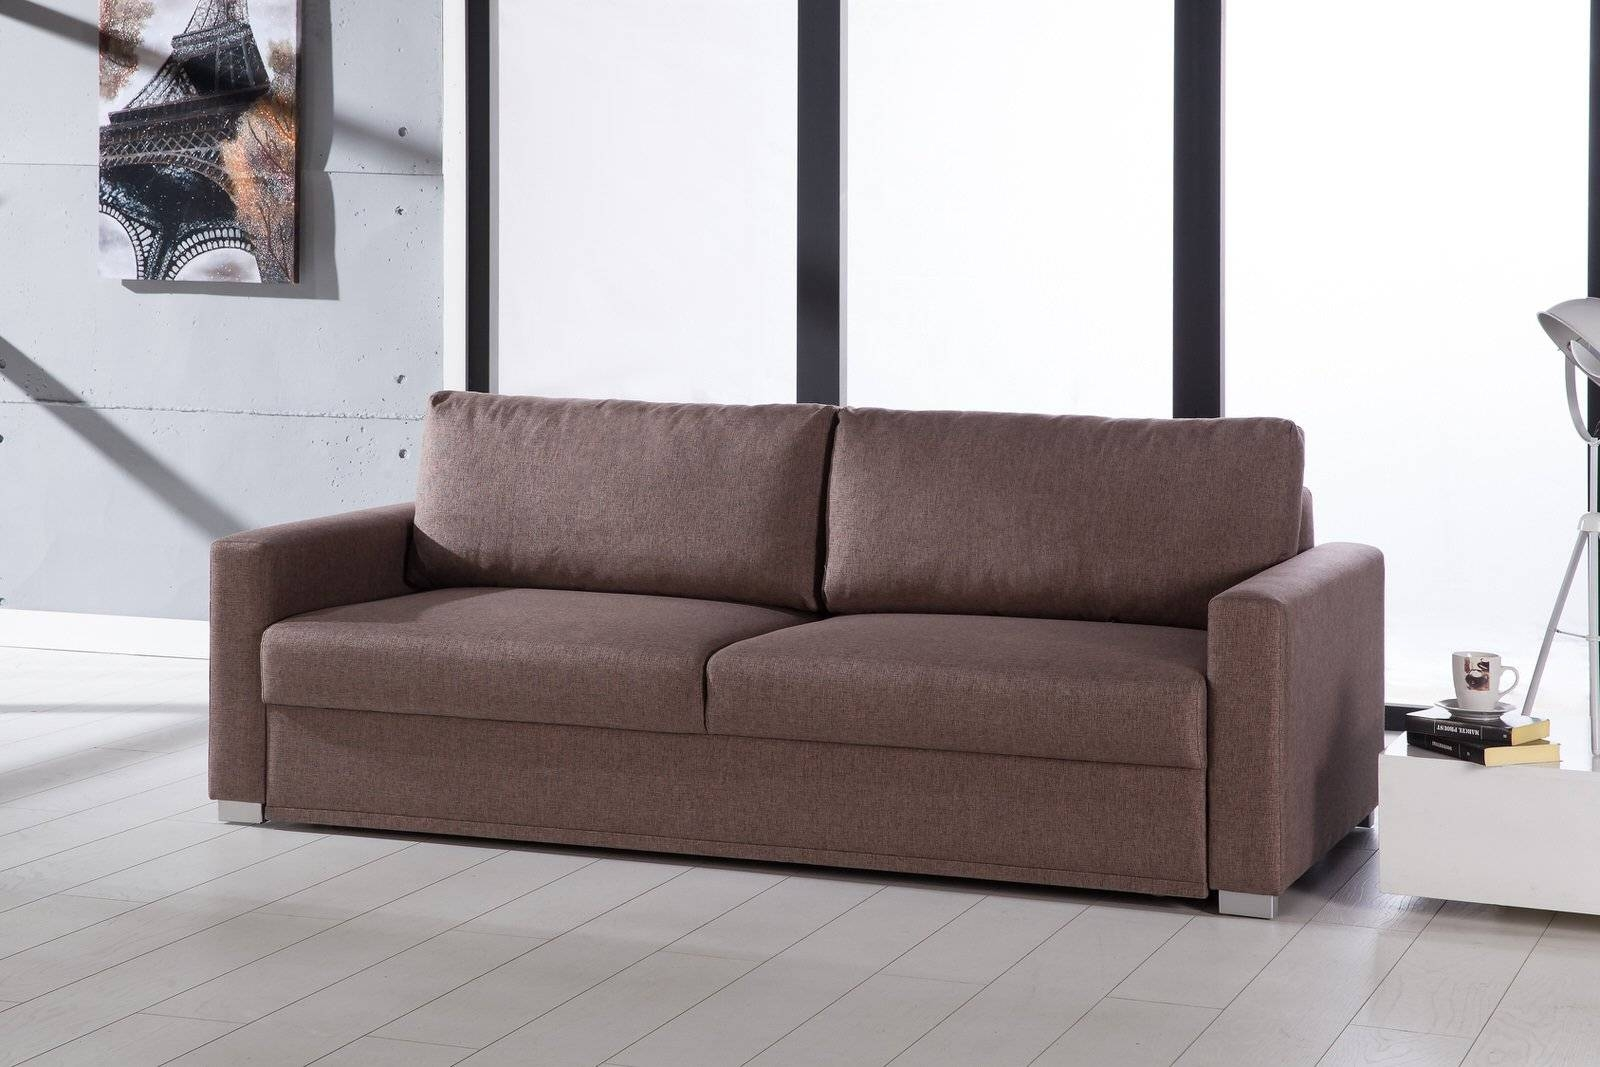 Felix Diego Light Brown Convertible Sofa Bedsunset pertaining to Queen Convertible Sofas (Image 5 of 15)